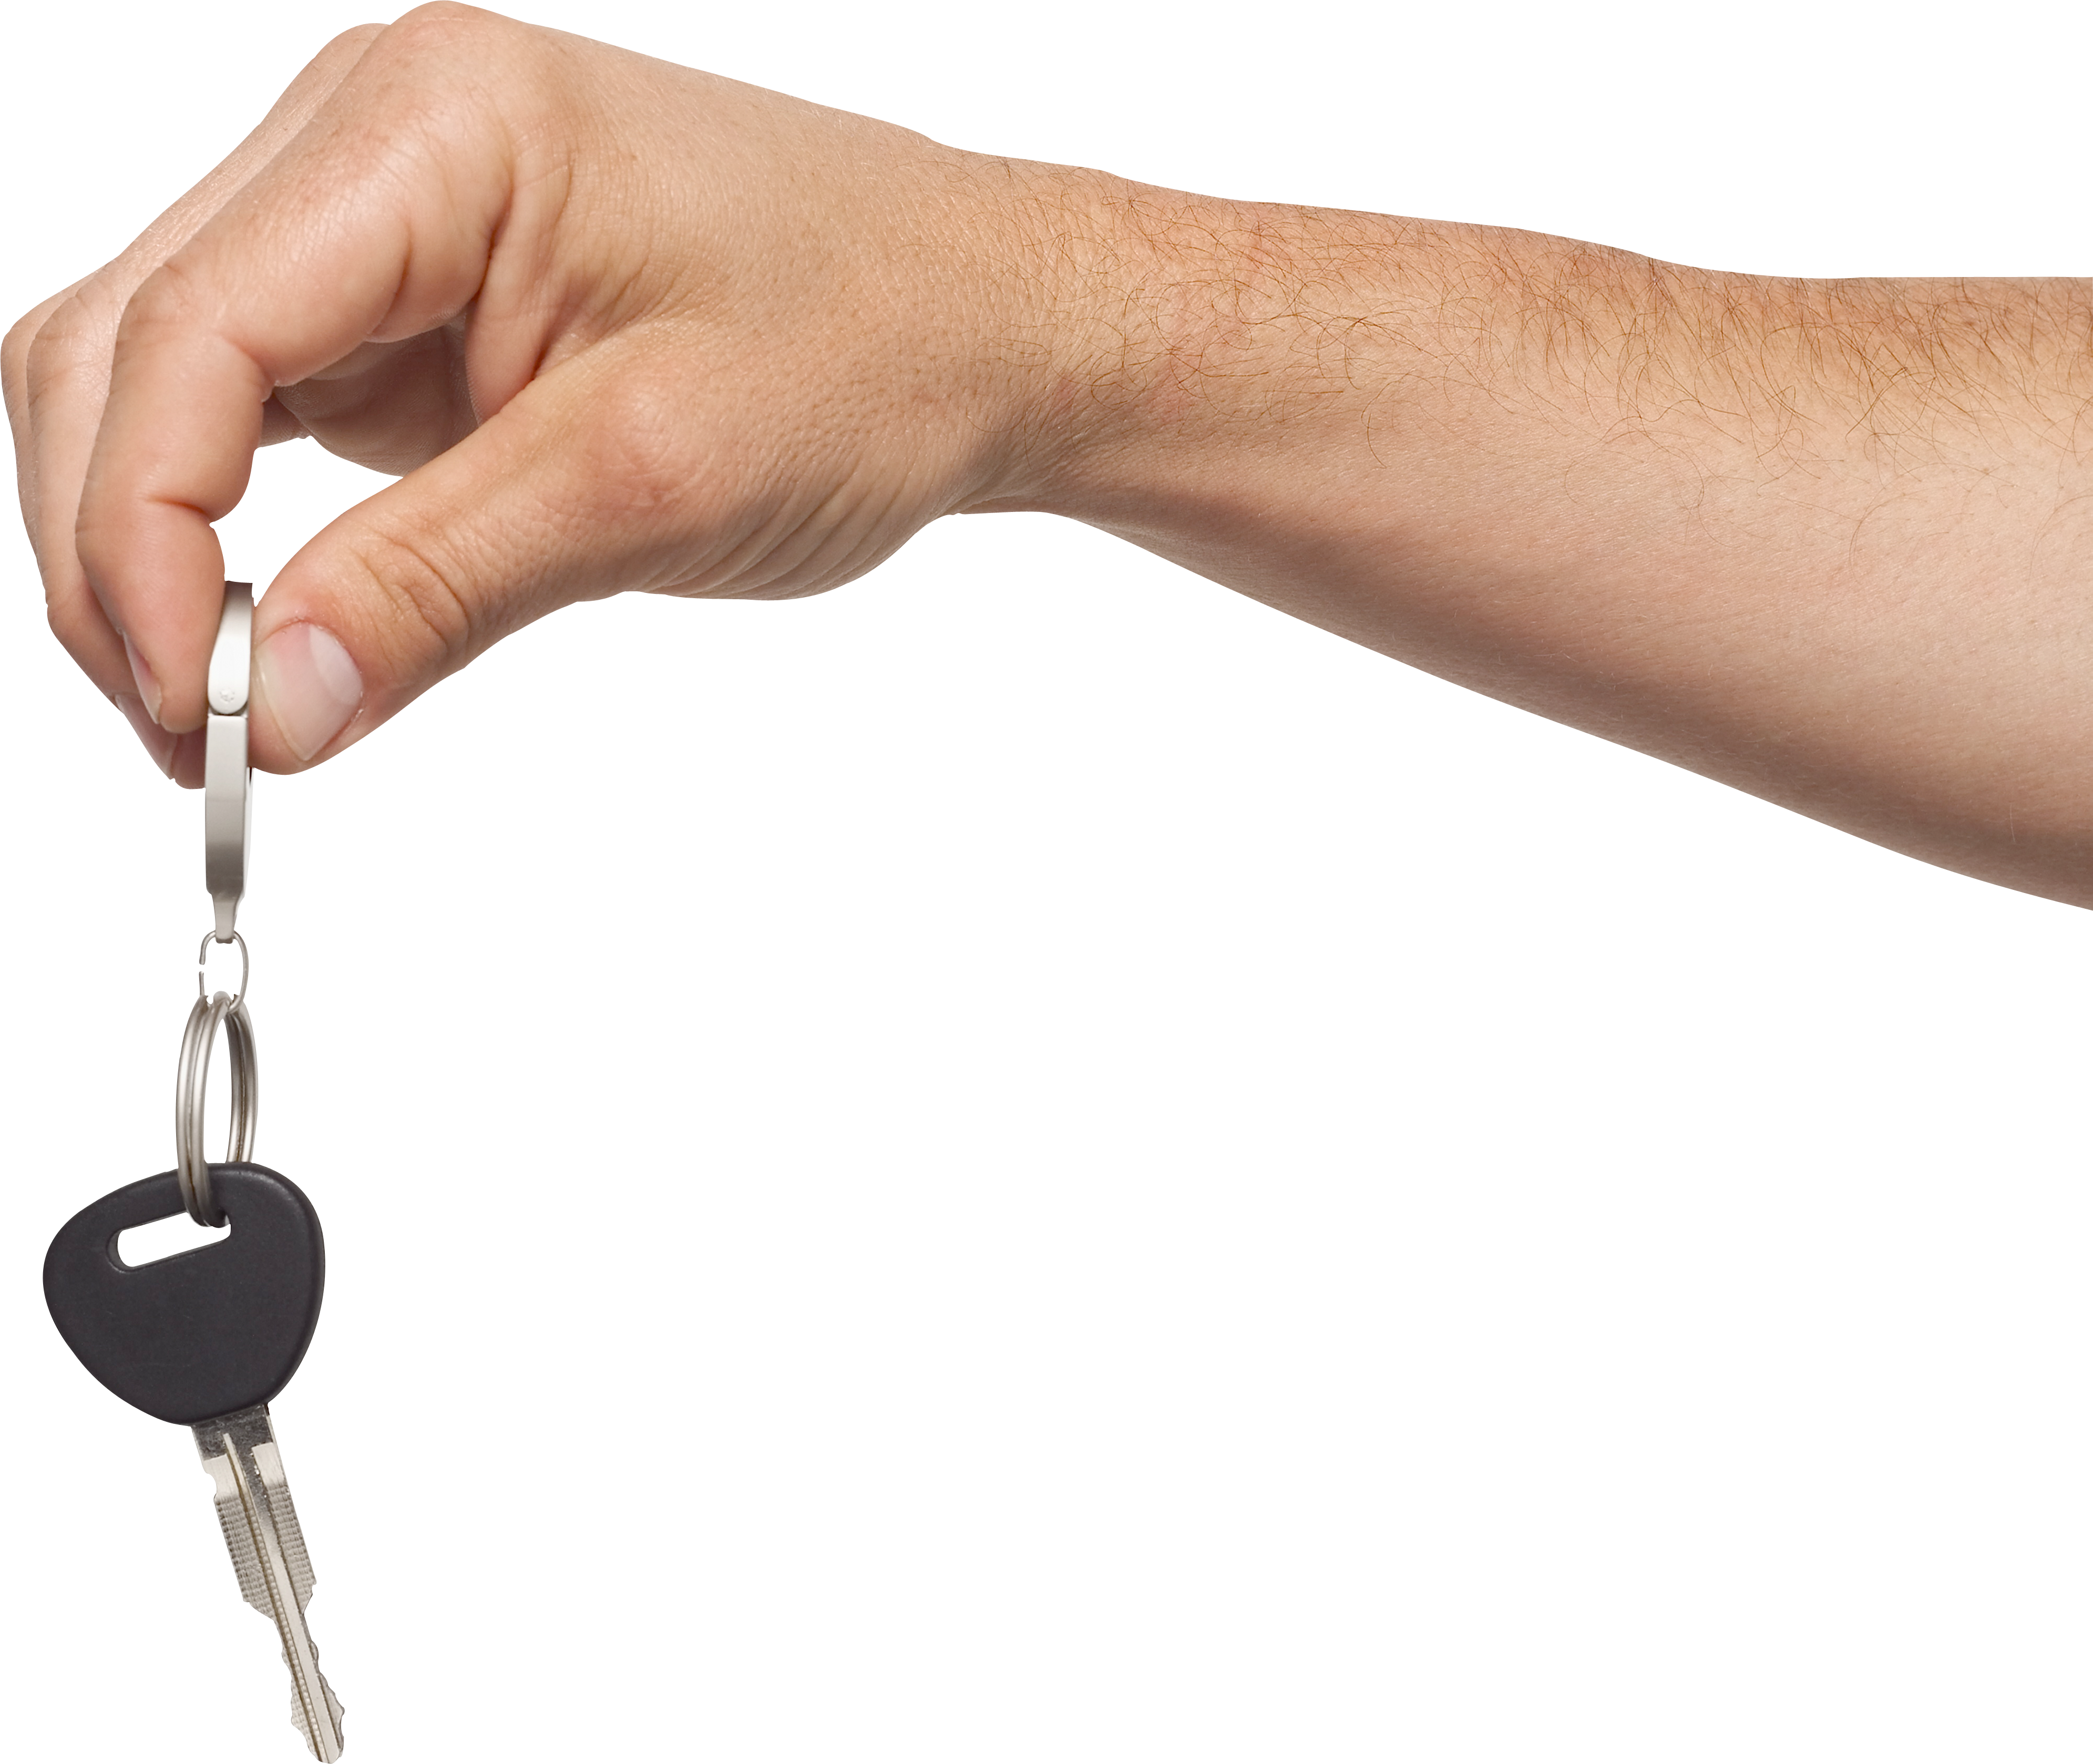 Hands carrying a house clipart clipart royalty free library Key in hand PNG clipart royalty free library